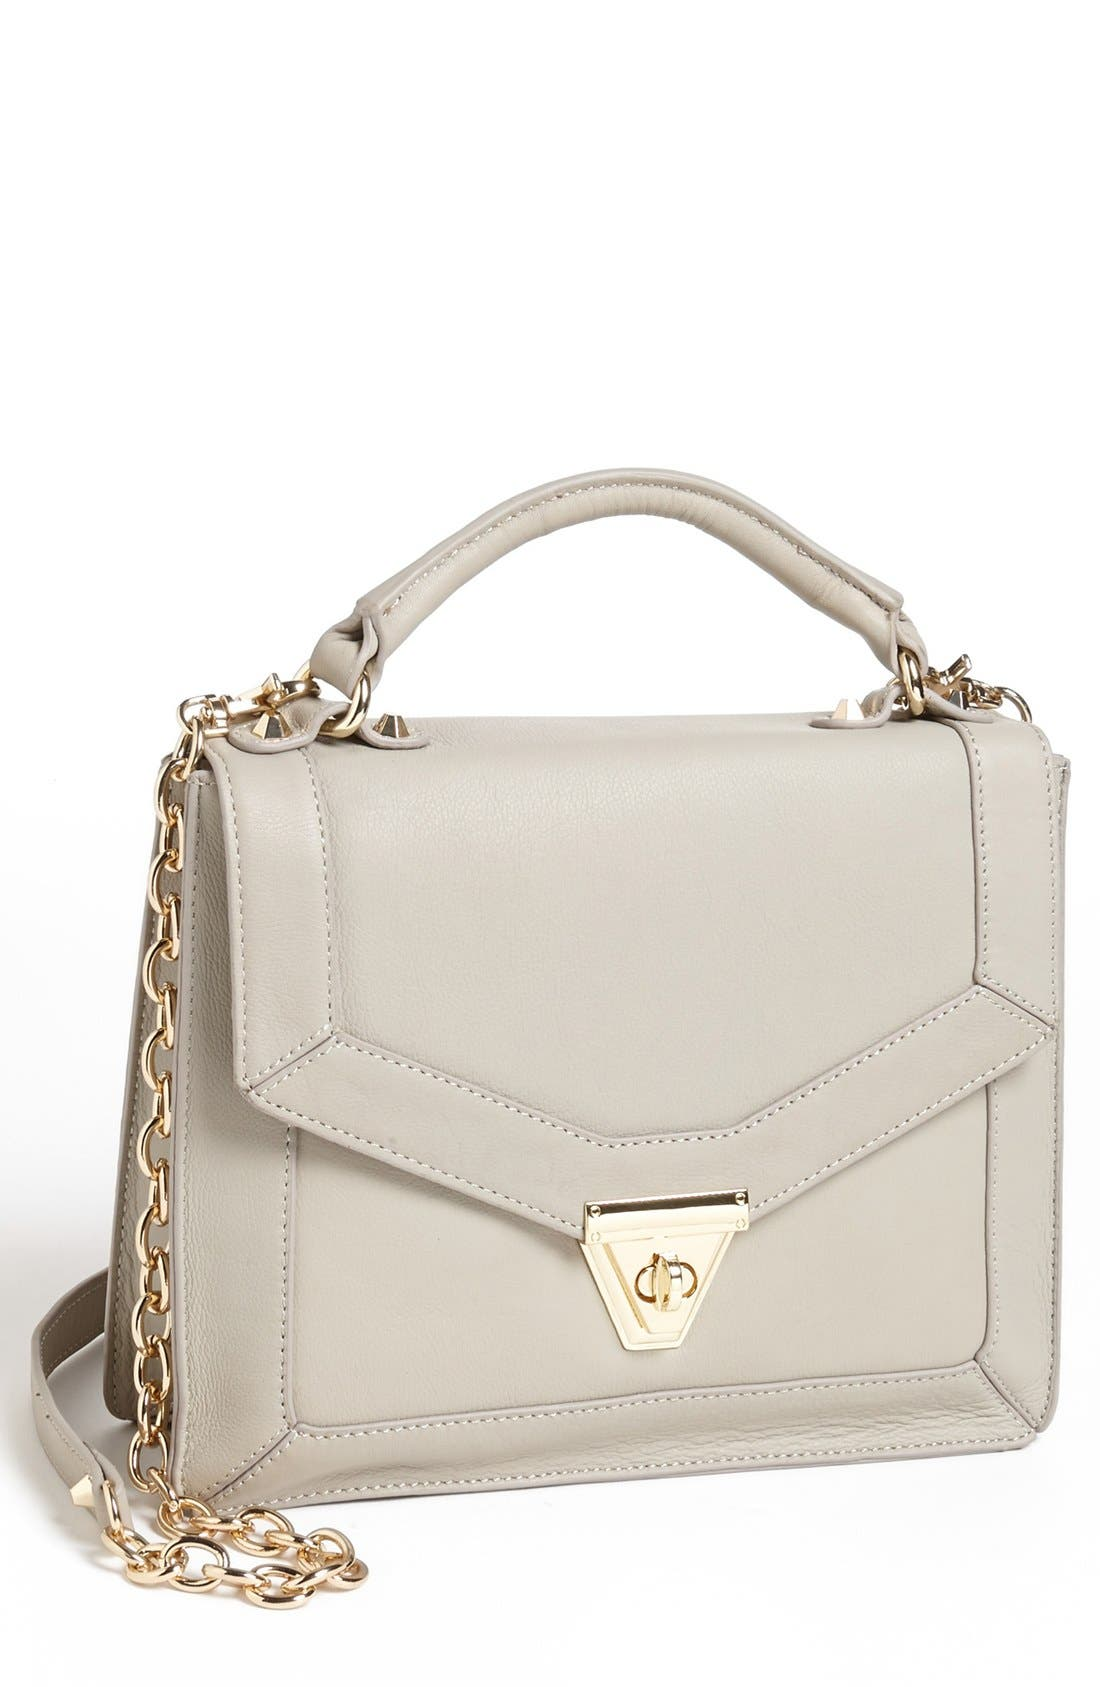 Main Image - Sole Society 'Lisette - Medium' Shoulder Bag